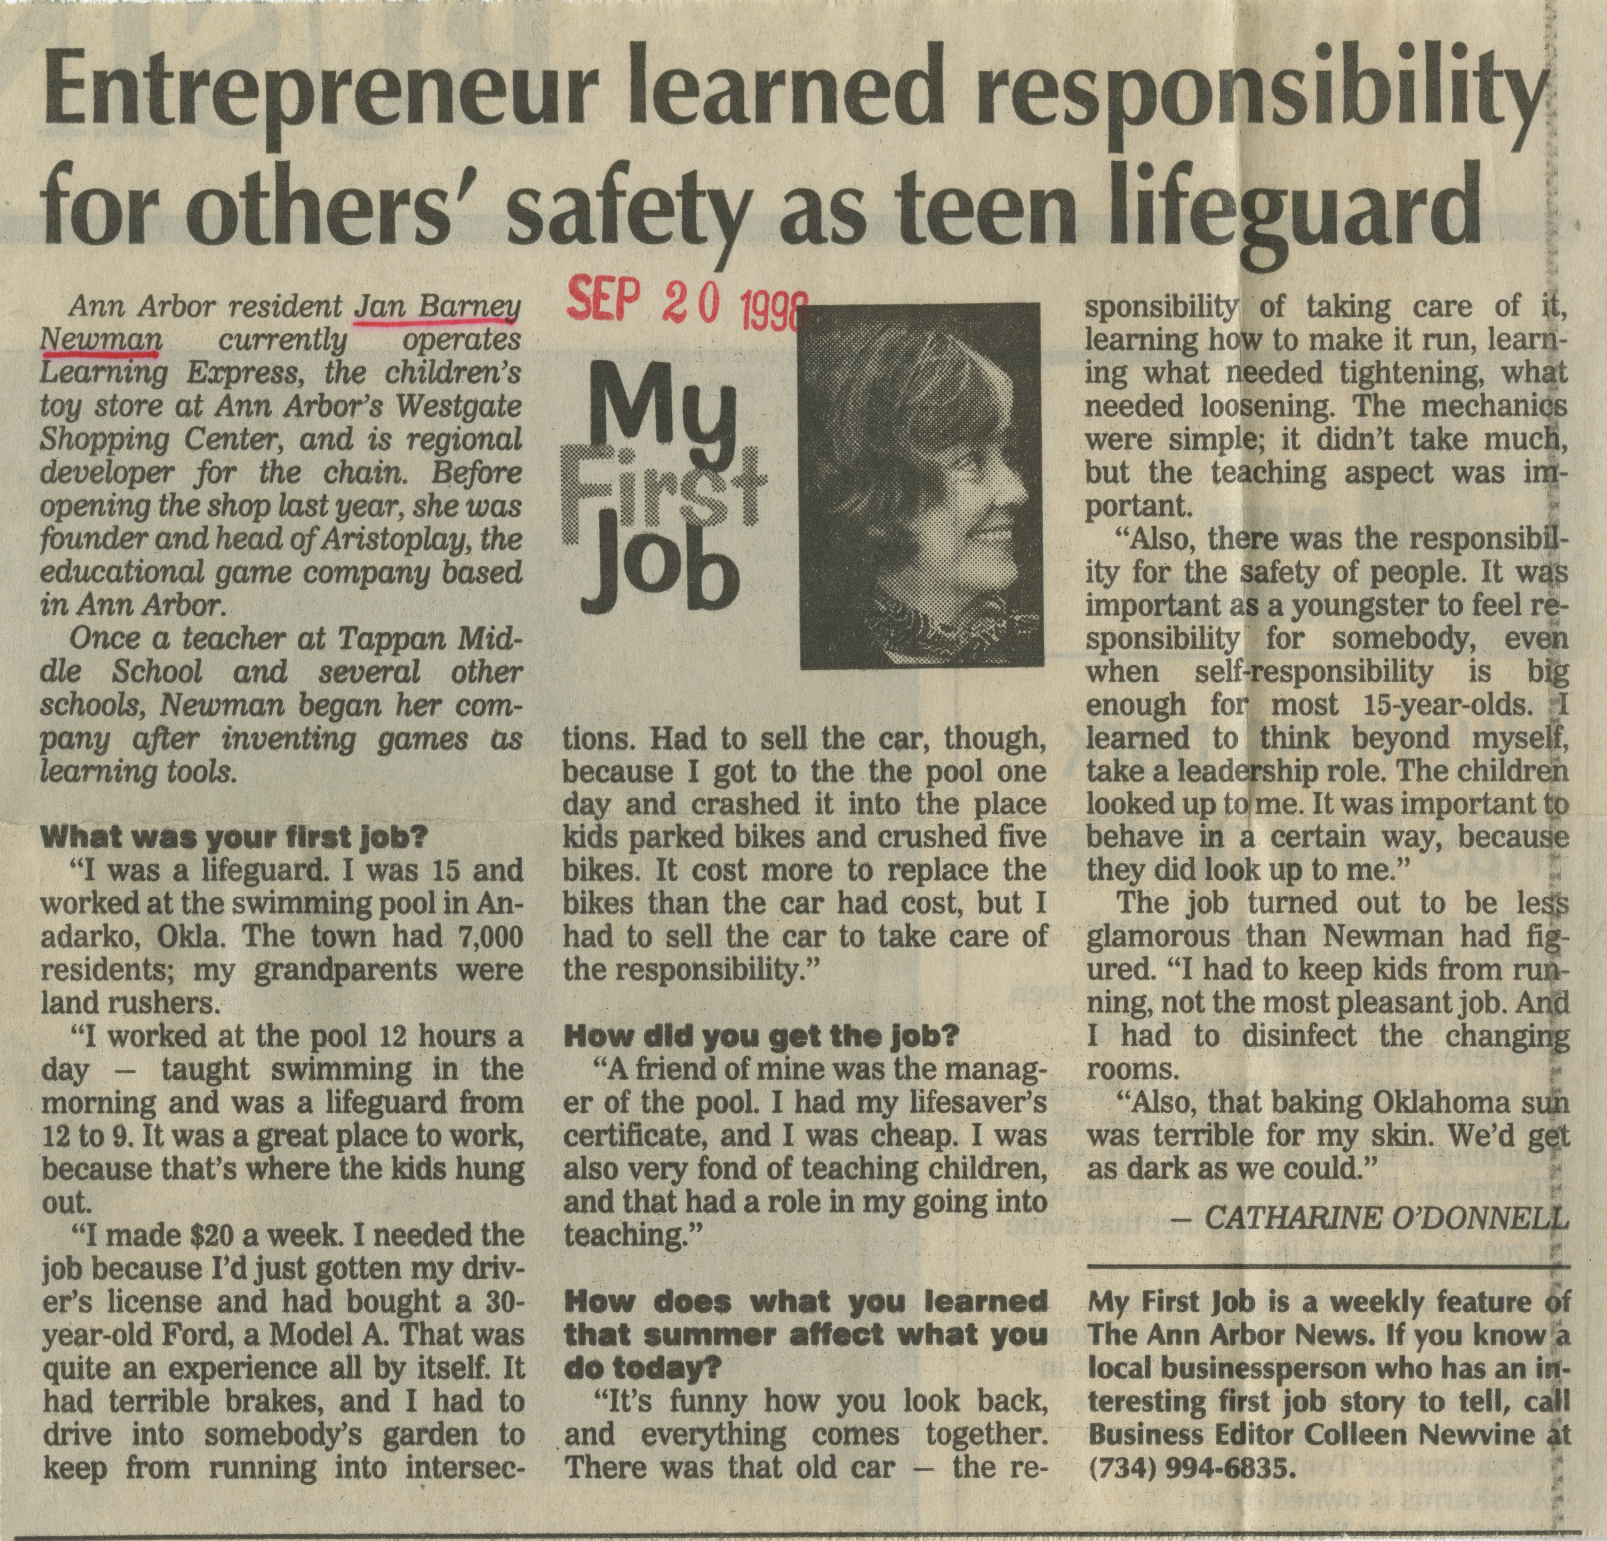 Entrepreneur learned responsibility for others' safety as teen lifeguard image